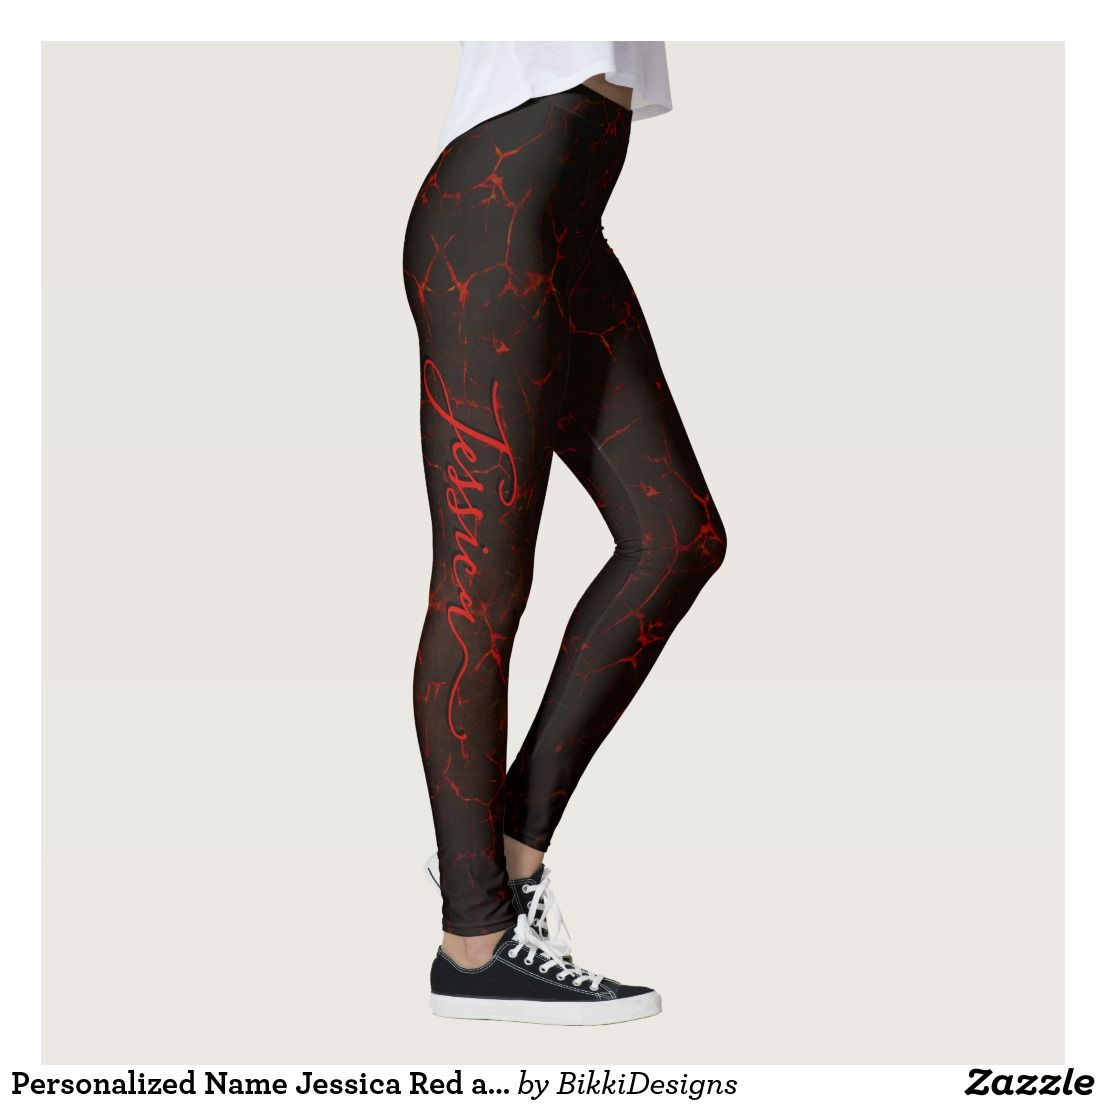 0a733ba26d72b Personalized Name Jessica Red and Black Leggings | Zazzle.com in ...